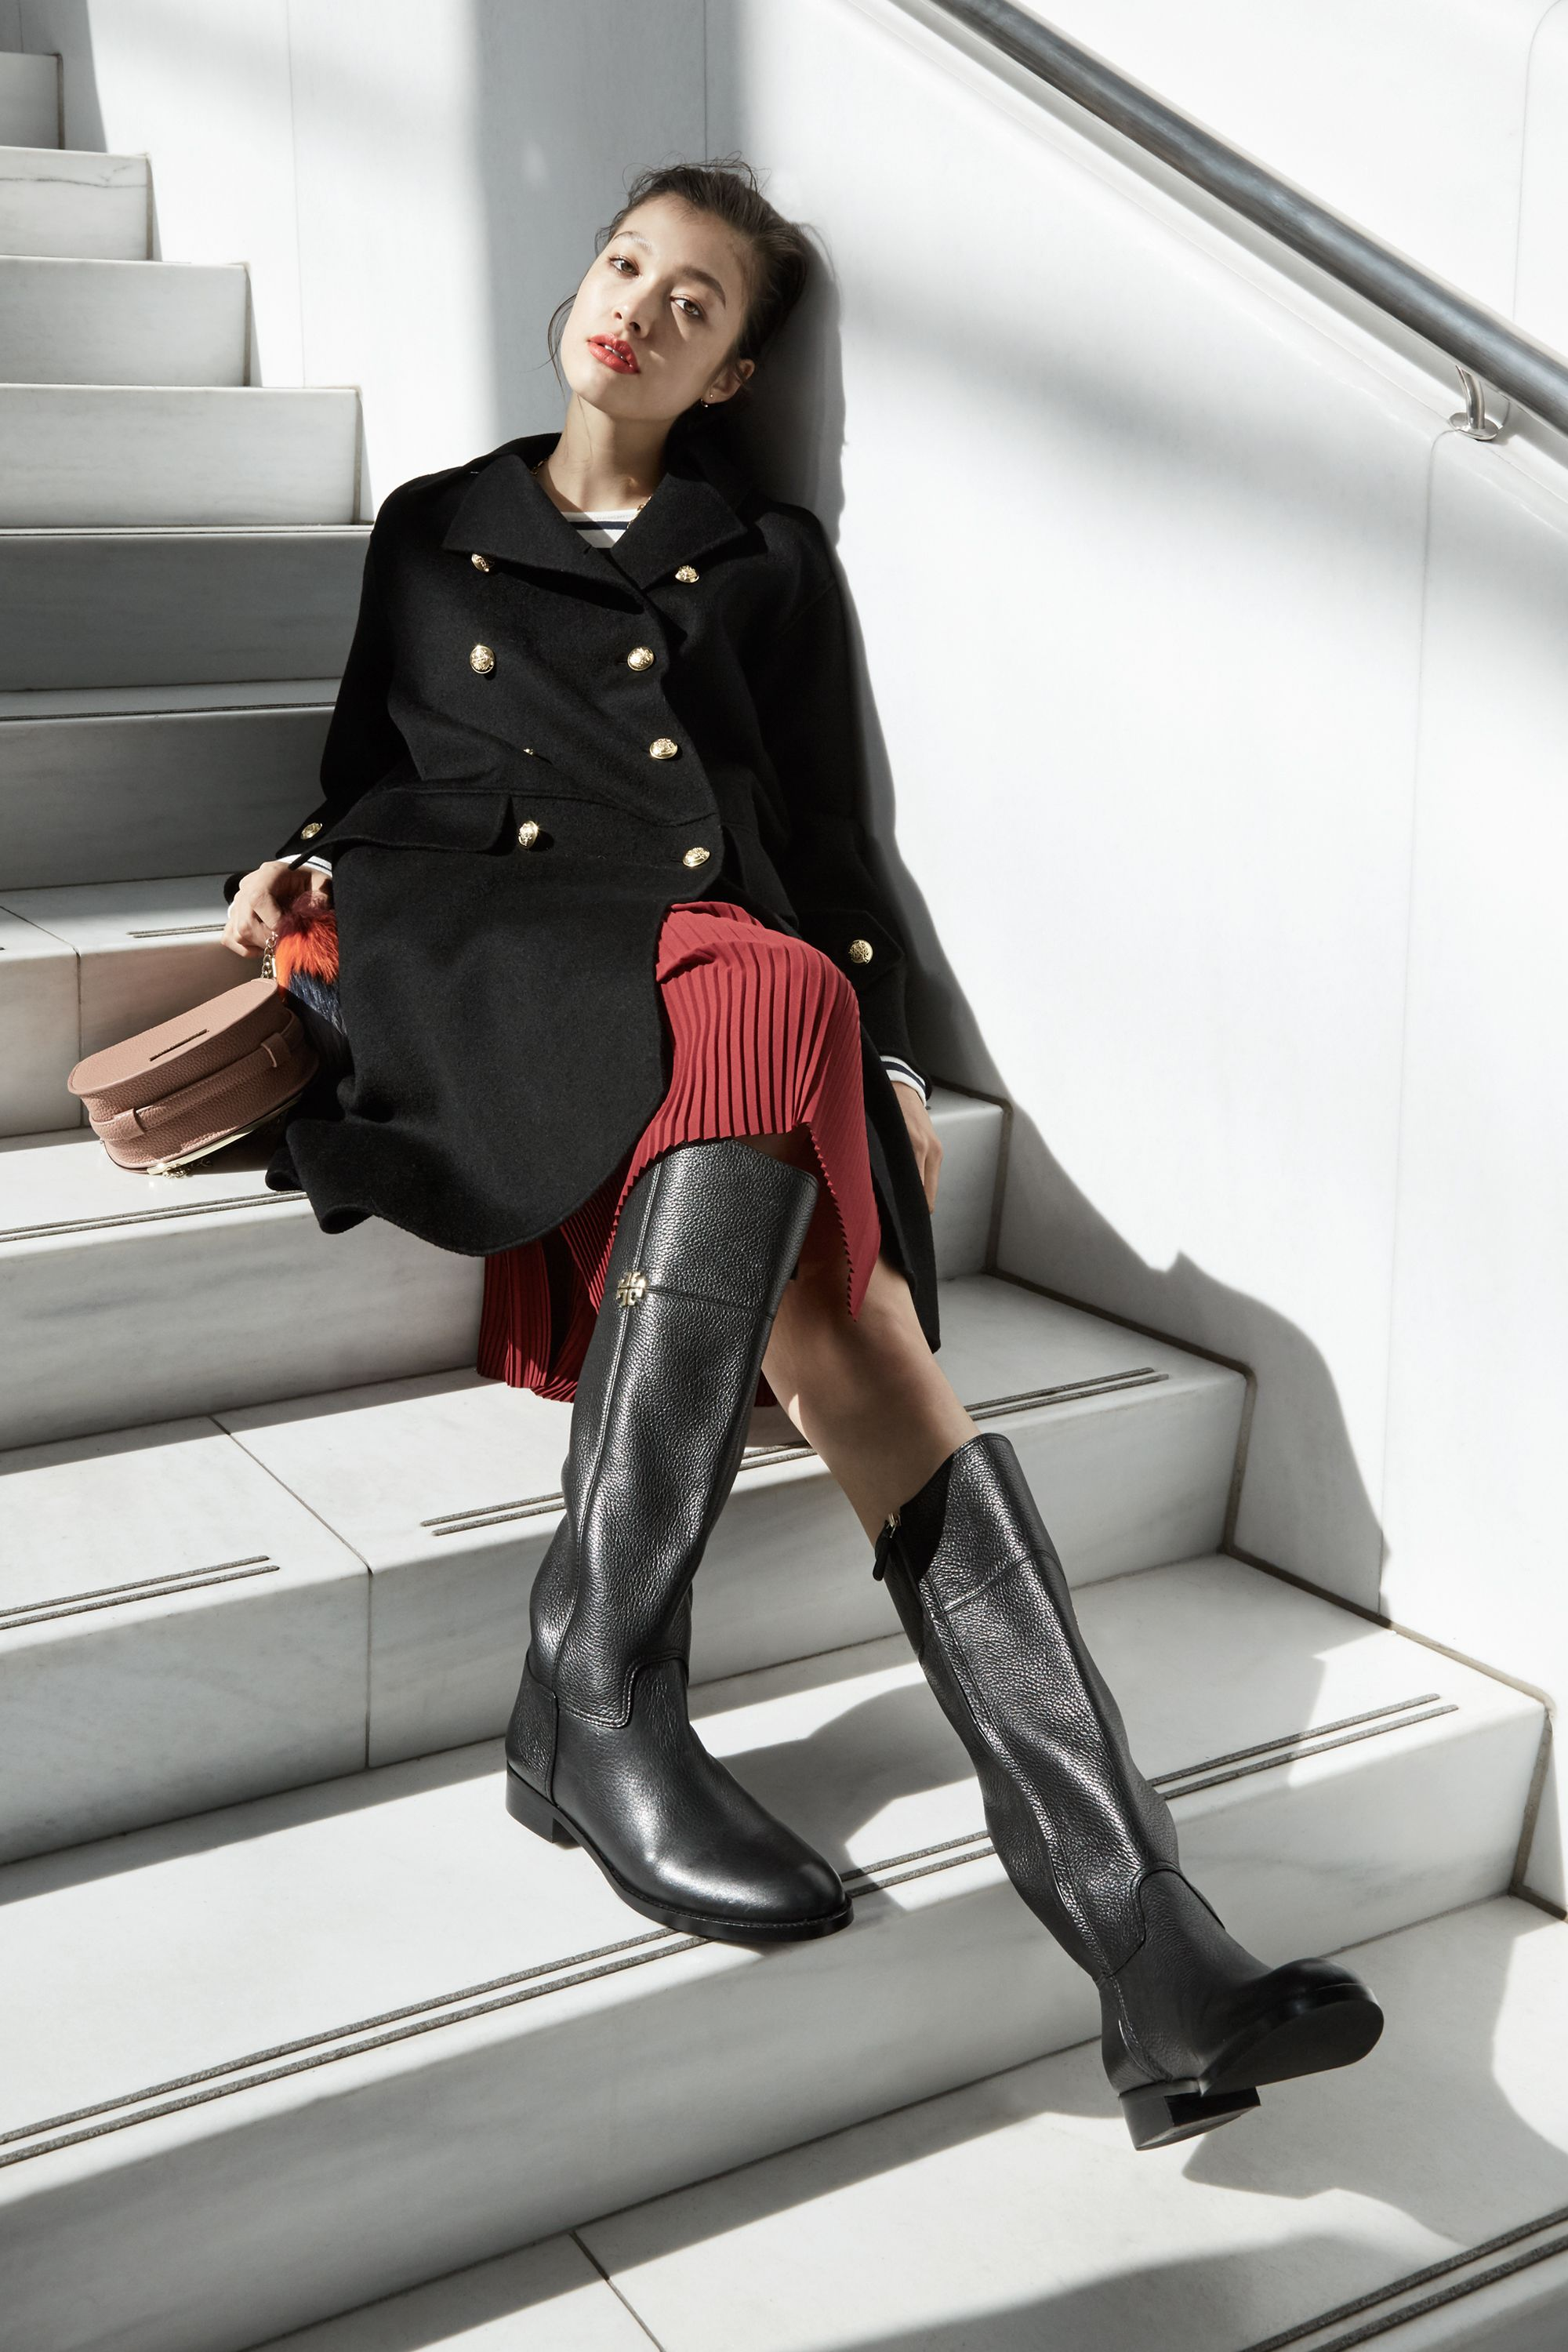 "<p>Knee-high flat boots will be the lynchpin of your autumn daytime wardrobe, looking just as handsome worn with skinny jeans as they will with a chic cashmere midi-skirt. The best part of all? The rich texture will only get better with age and use.<br> </p><p><br> </p><p><em data-redactor-tag=""em""><strong data-redactor-tag=""strong"">The Shoe:</strong> <em data-redactor-tag=""em"">Tory Burch Jolie Riding Boot, $495, <a href=""https://www.toryburch.com/jolie-riding-boot/31192.html?cgid=shoes-boot-%20guide&dwvar_31192_color=001&start=2"" target=""_blank"" data-tracking-id=""recirc-text-link"">toryburch.com</a></em></em> </p><p><br></p><p><em data-redactor-tag=""em""><strong data-redactor-tag=""strong"">The Clothes</strong>: H&M Wool-Blend Coat (similar), $129, <a href=""http://www.hm.com/us/product/56112?article=56112-A"" target=""_blank"" data-tracking-id=""recirc-text-link"">hm.com</a>; J. Crew Deck-Striped T-Shirt, $40, <a href=""https://www.jcrew.com/womens_category/Tshirtsandtanktops/longsleevetshirts/PRDOVR~E1143/E1143.jsp"" target=""_blank"" data-tracking-id=""recirc-text-link"">jcrew.com</a>; & Other Stories Pleats Panel Skirt, $85, <a href=""http://www.stories.com/us/Ready-to-wear/Skirts/Pleats_Panel_Skirt/590576-103649541.1"" target=""_blank"" data-tracking-id=""recirc-text-link"">stories.com</a>; BCBGeneration Lizard-Embossed Saddle Bag, $58, <a href=""http://www.bcbgeneration.com/TPN671GN-280.html?dwvar_TPN671GN-280_color=280#start=13"" target=""_blank"" data-tracking-id=""recirc-text-link"">bcbgeneration.com</a>; Fossil Fur Tail Bag Charm, $38, <a href=""https://www.fossil.com/us/en/products/fur-tail-bag-charm-sku-sl7076788c.html"" target=""_blank"" data-tracking-id=""recirc-text-link"">fossil.com</a></em></p>"